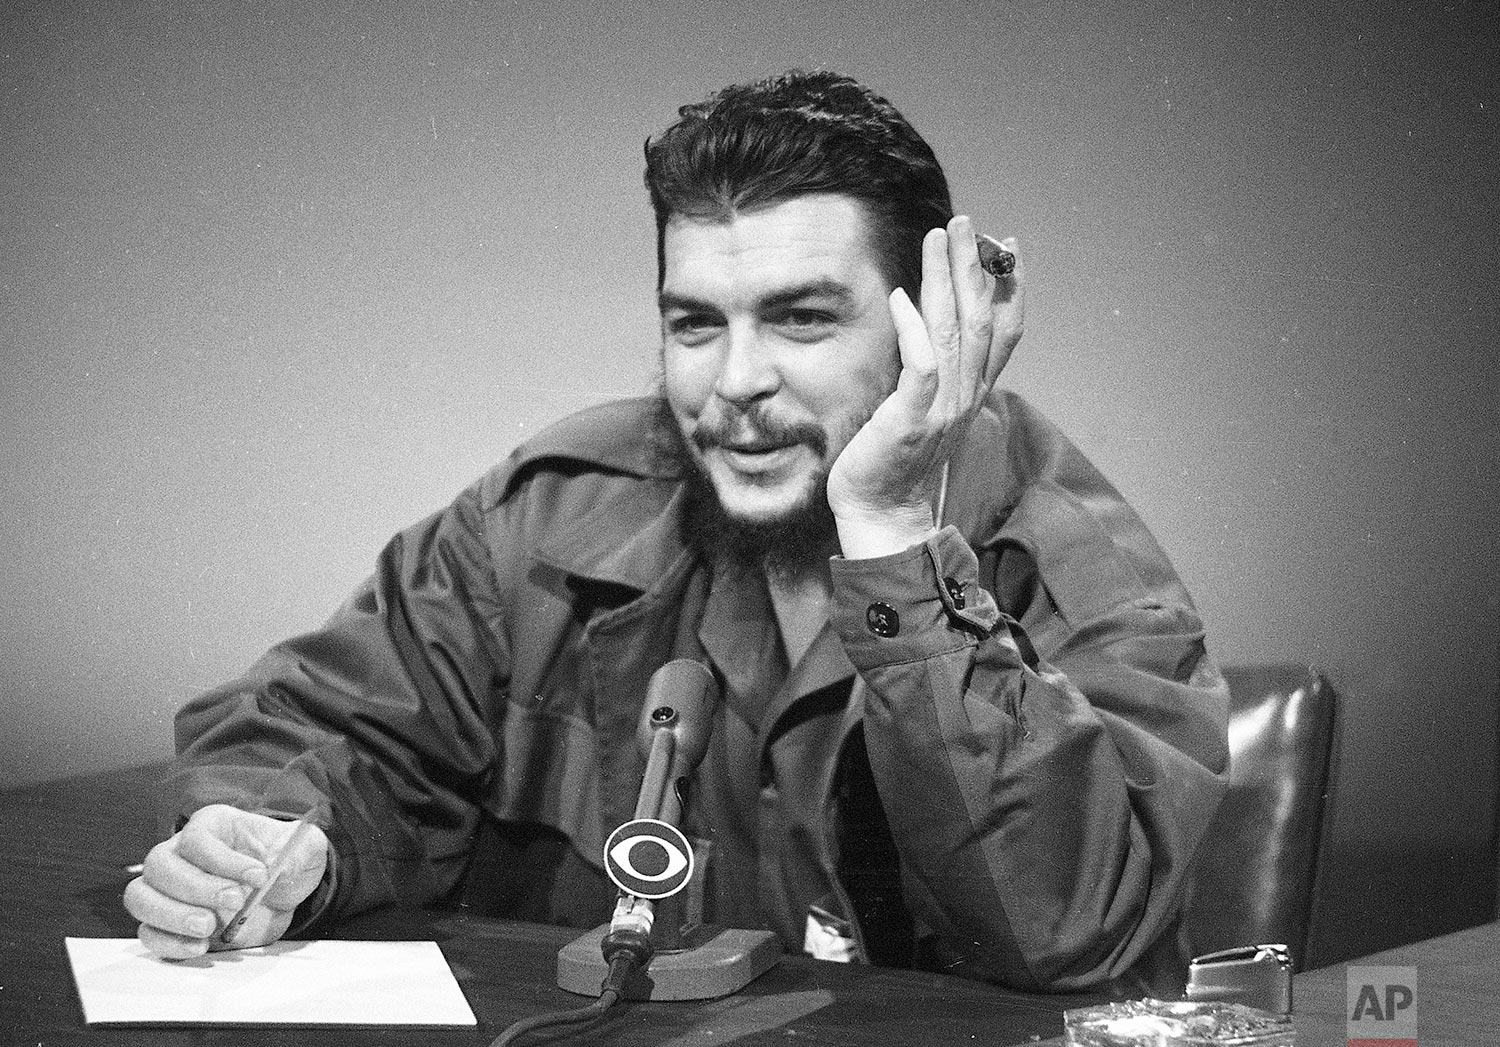 """In this Dec. 13, 1964 photo, Cuba's Ernesto """"Che"""" Guevara makes an appearance on """"Face the Nation"""" at CBS-TV studios in New York. (AP Photo)"""